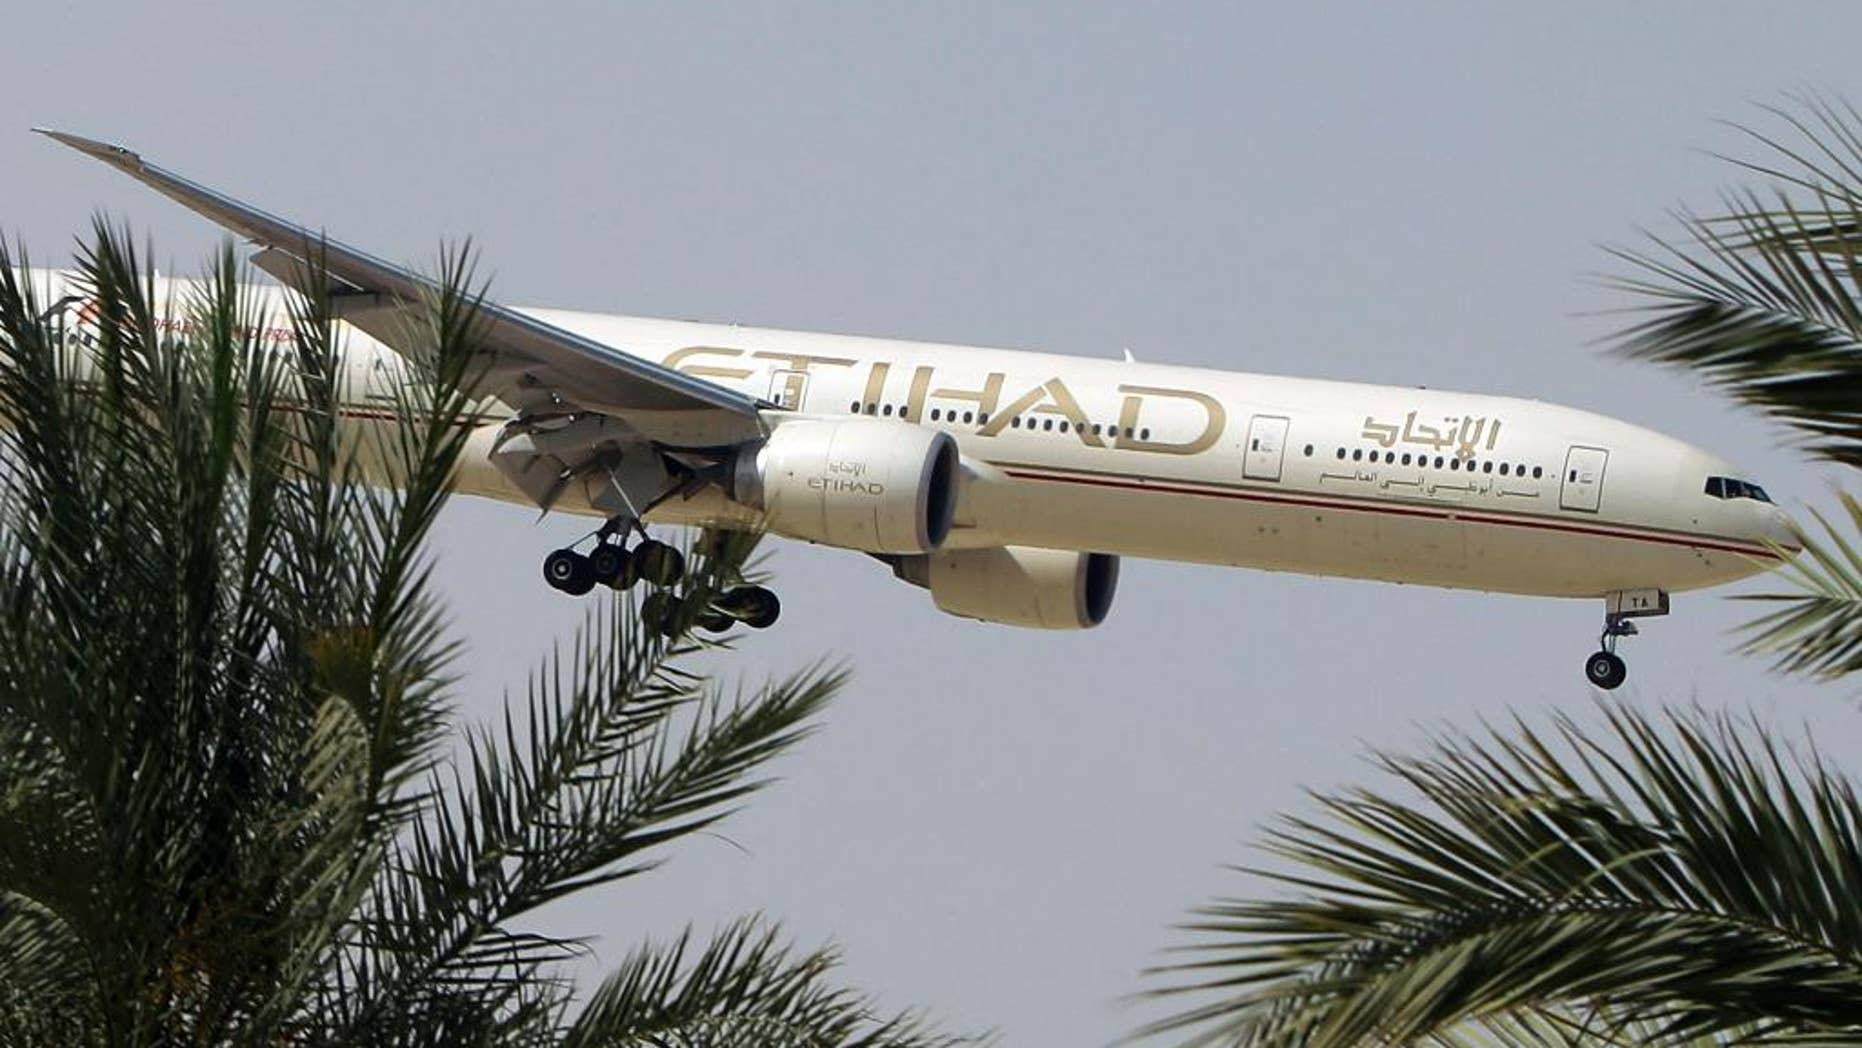 FILE- In this Sunday, May 4, 2014 file photo, an Etihad Airways plane prepares to land in Abu Dhabi Airport, United Arab Emirates. Jetliners from the United Arab Emirates' two main airlines apparently got too close to each other over the Indian Ocean this week. (AP Photo/Kamran Jebreili, File)